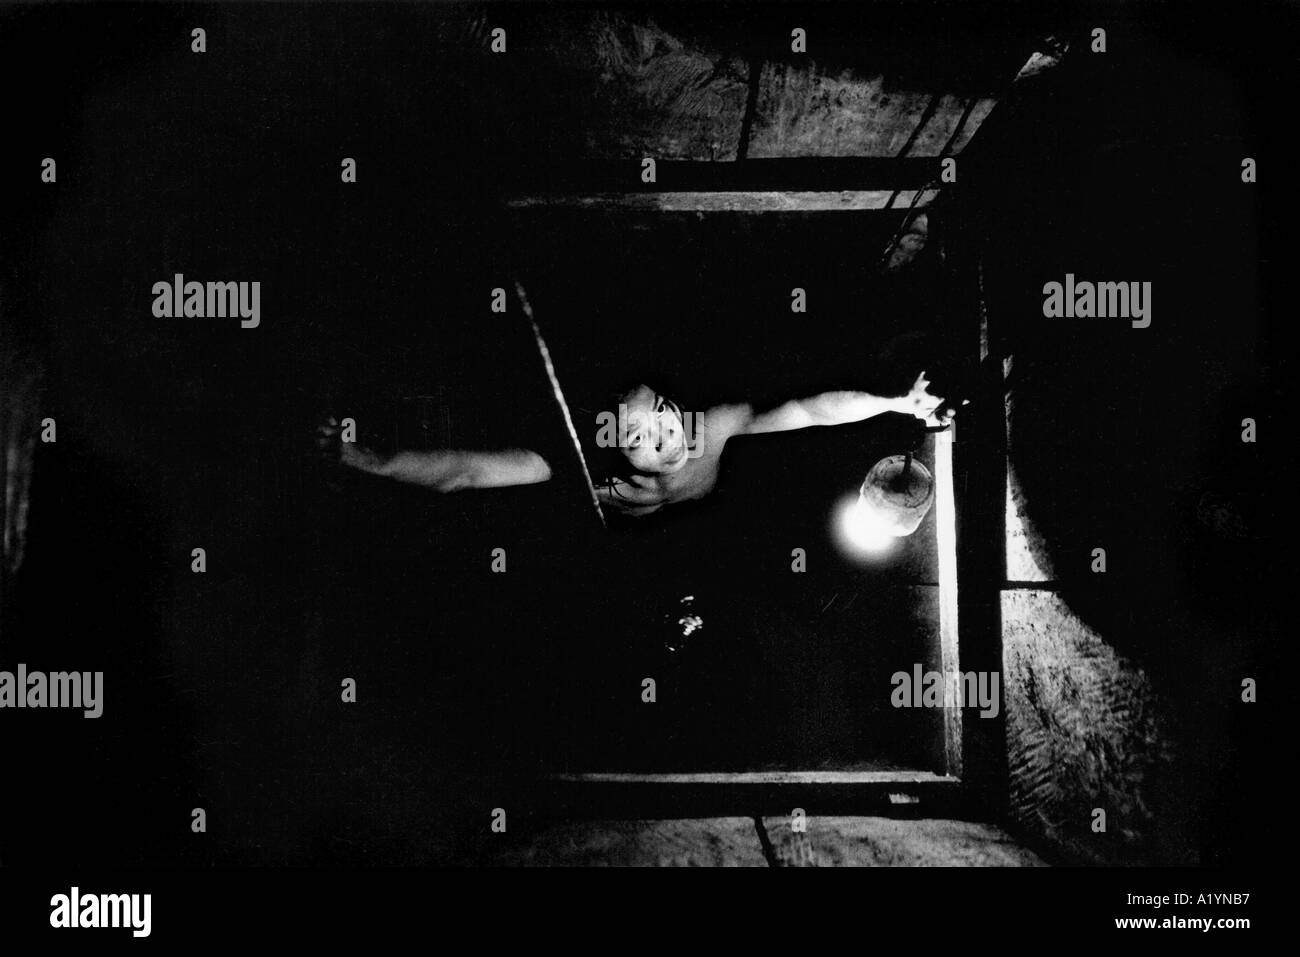 A young gold miner of small build is lowered down a hole up to 100 metres. - Stock Image